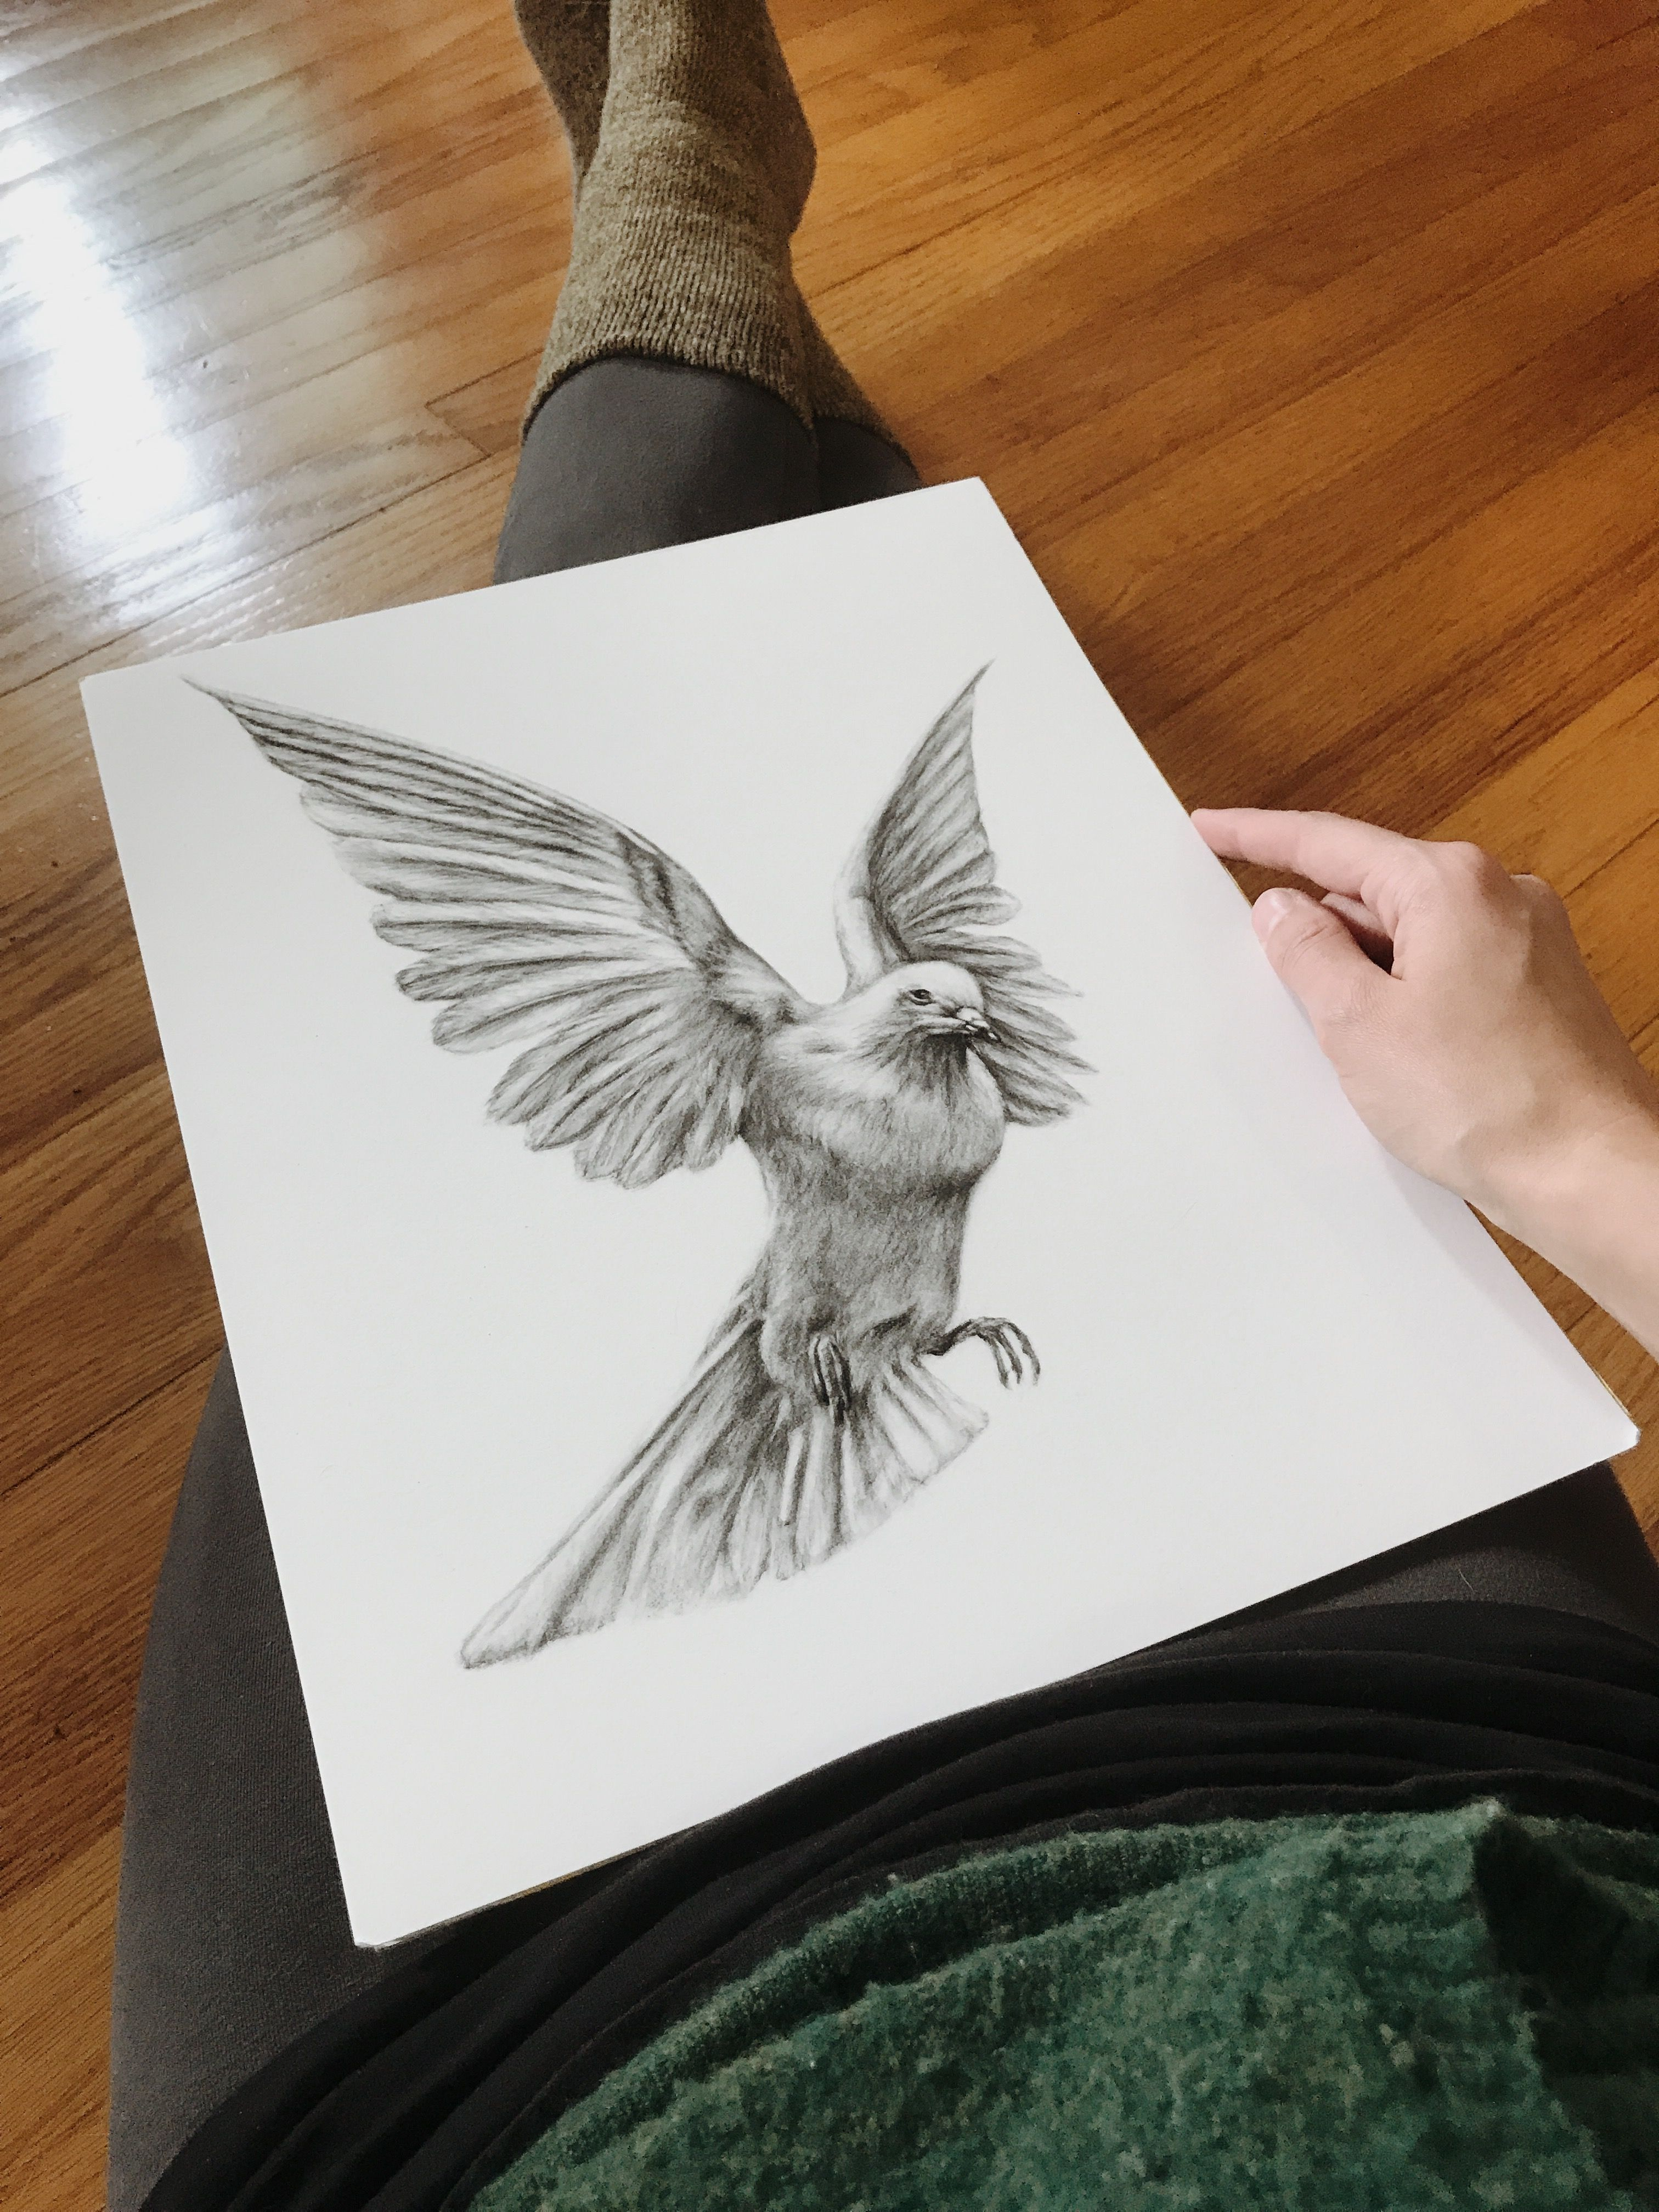 3024x4032 Dove Charcoal Drawing. Black And White Dove Design. Flying Dove